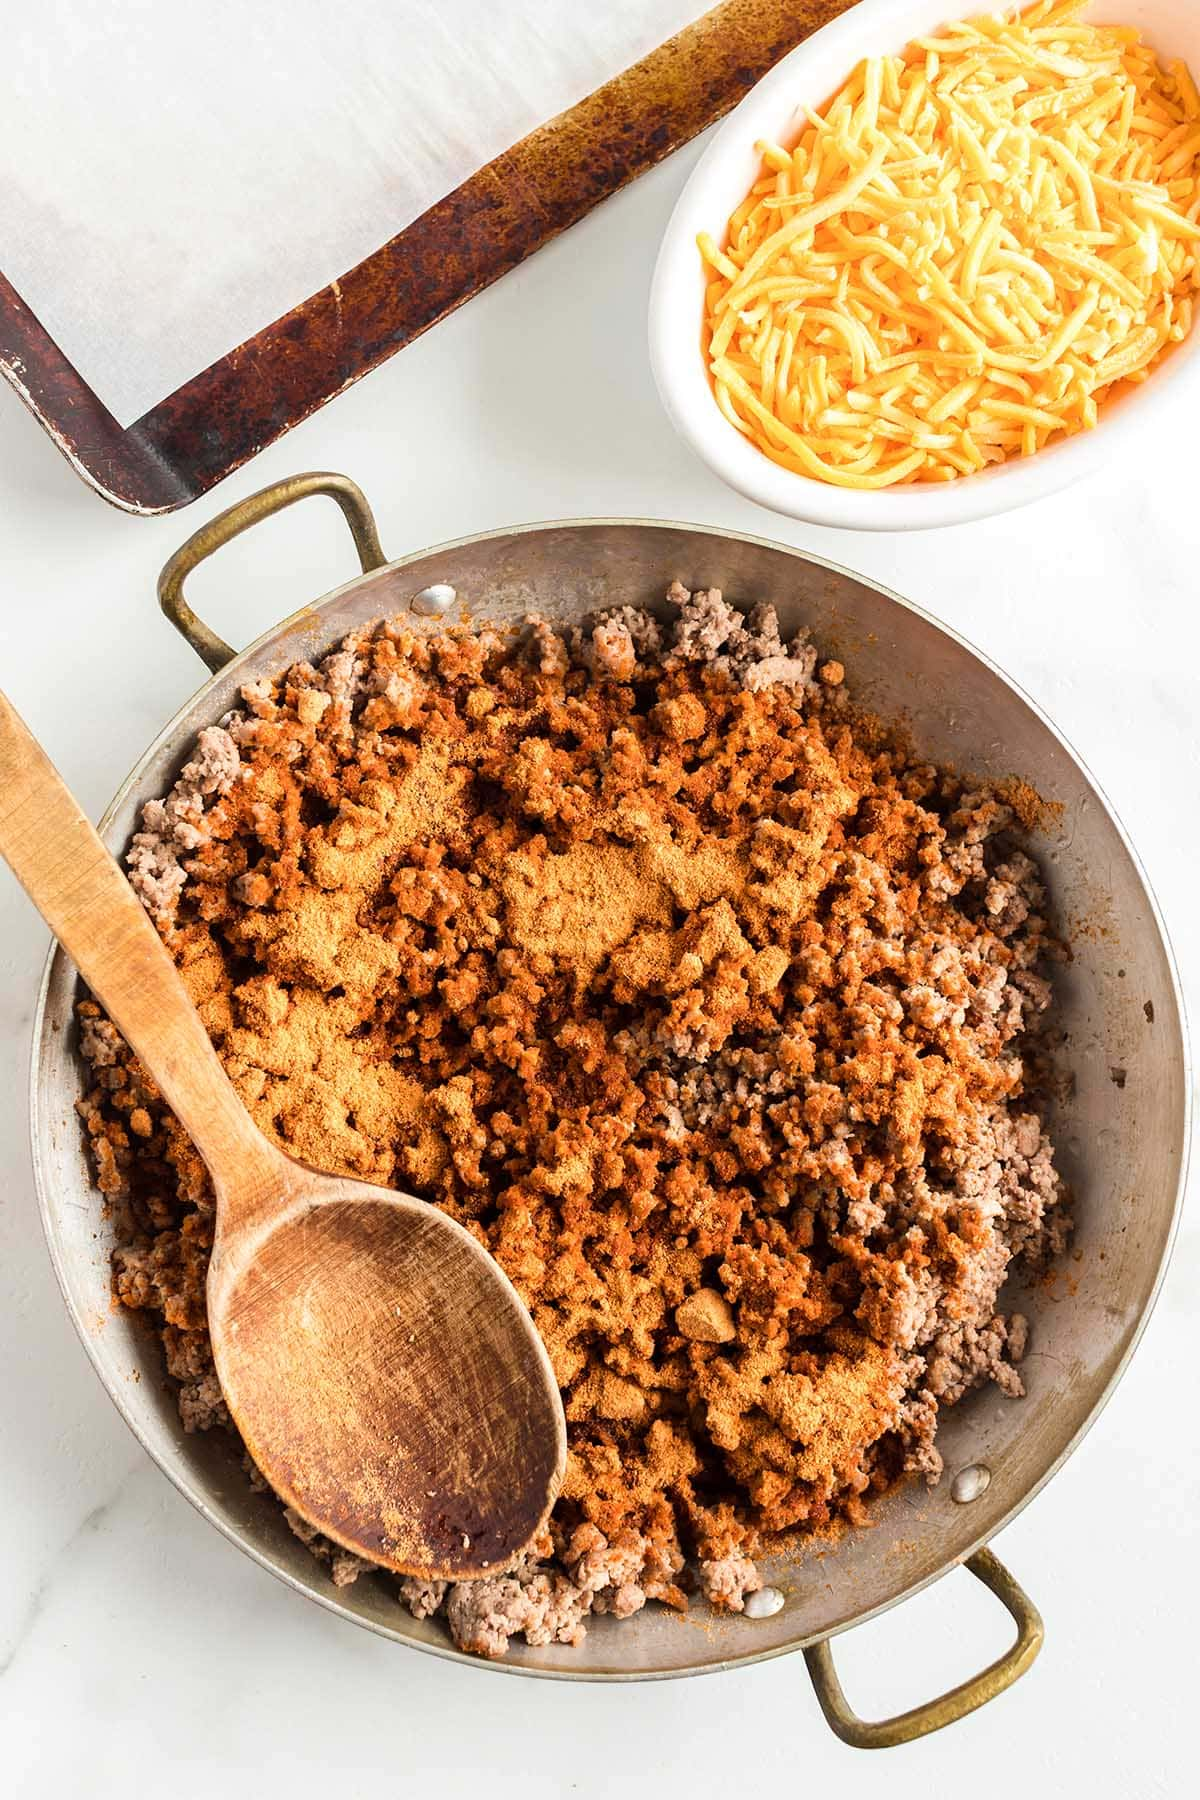 In a large skillet, cook the ground beef and taco seasoning